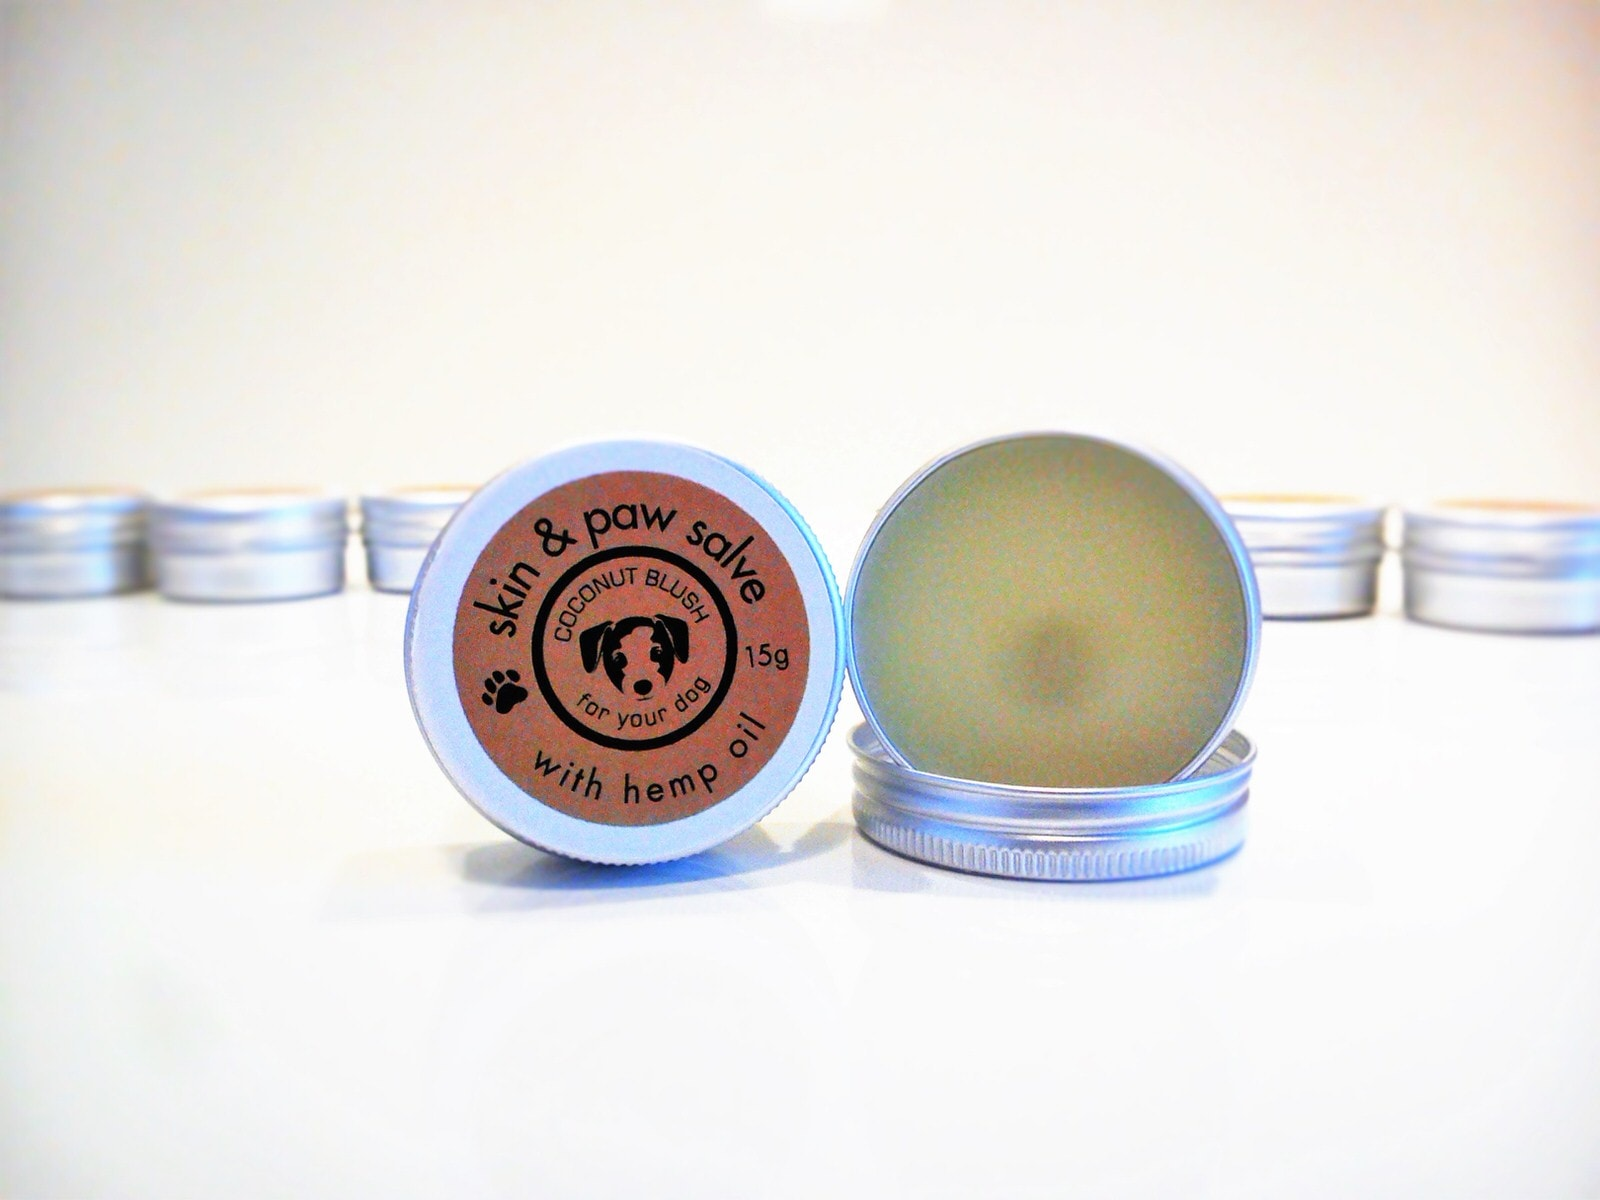 Coconut Blush Skin & Paw Salve for Dogs 15g